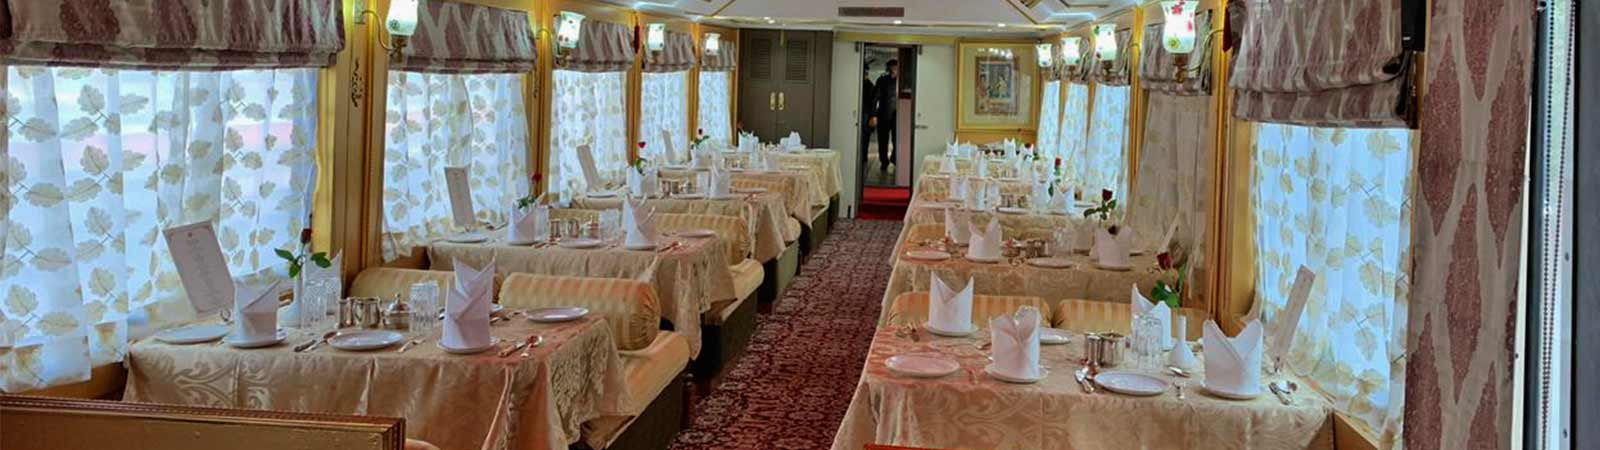 Palace on Wheels train restaurants